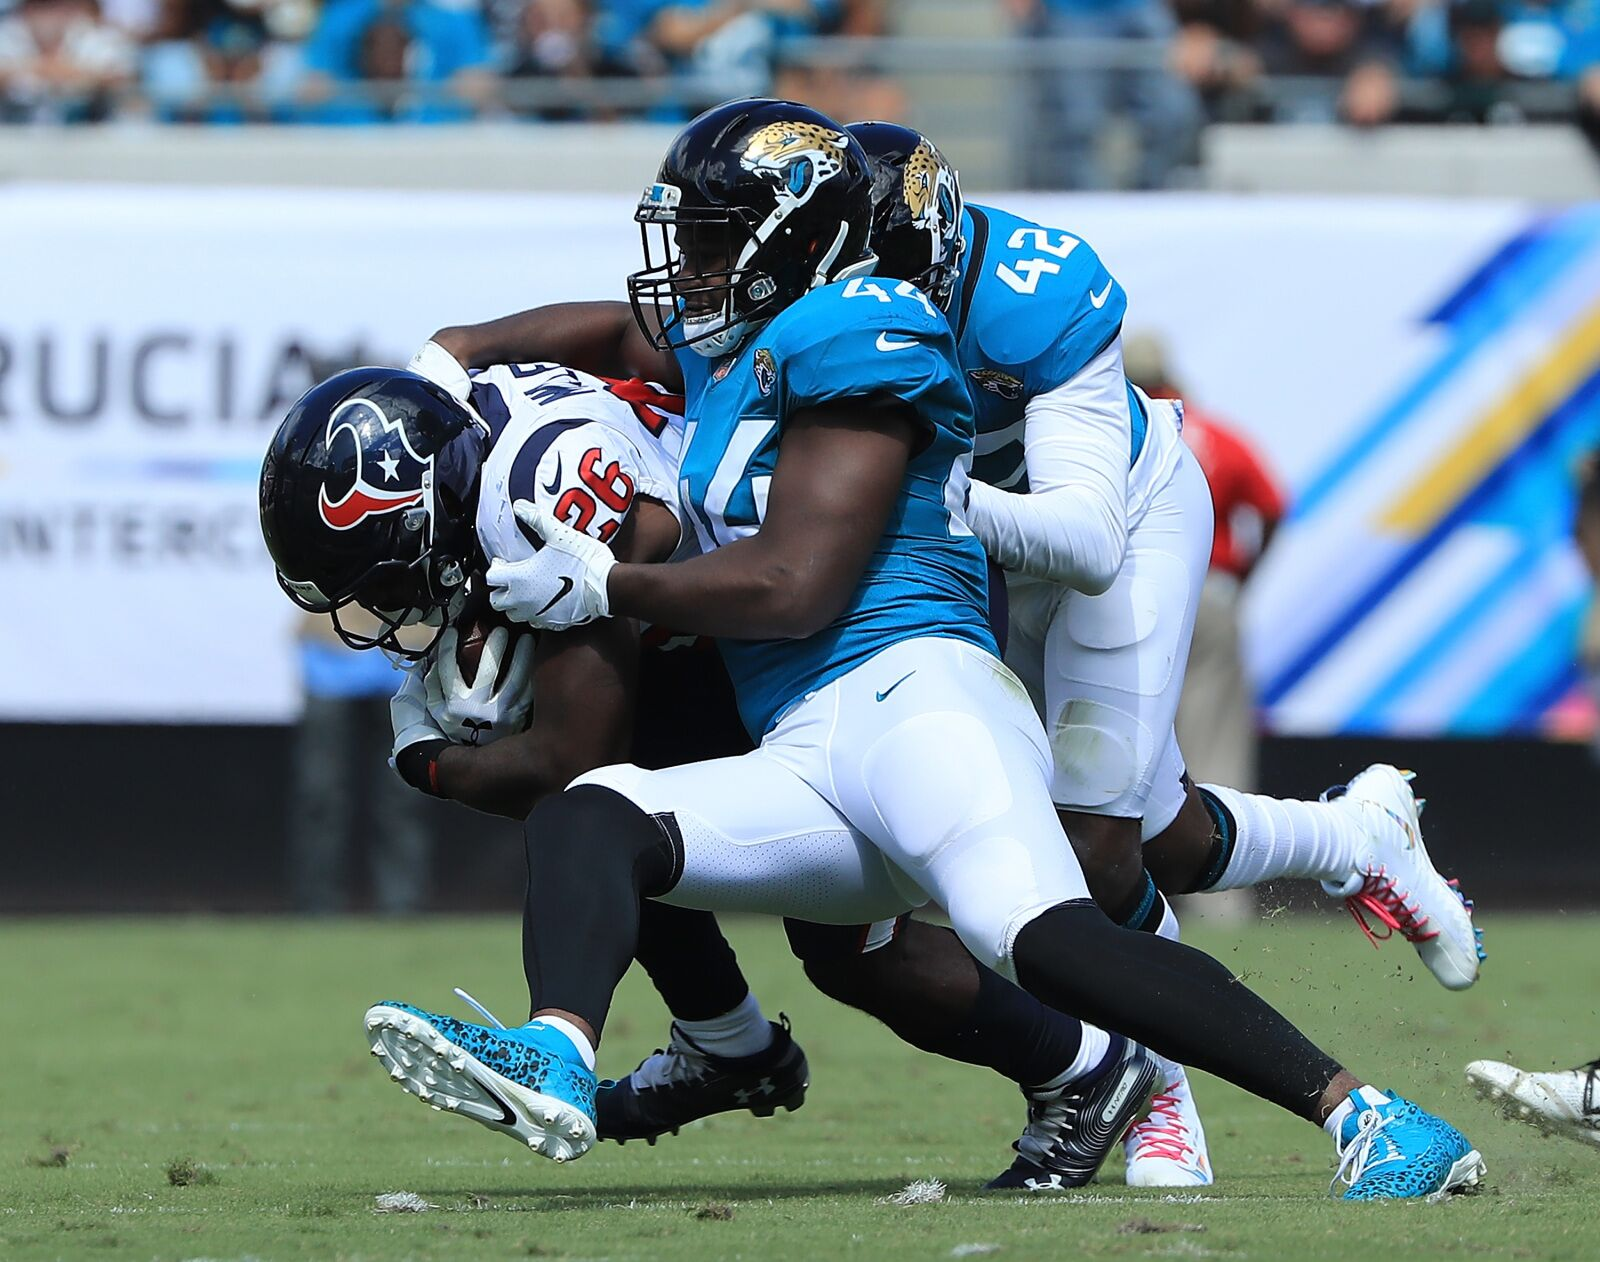 The Jaguars face the Titans in an AFC South showdown